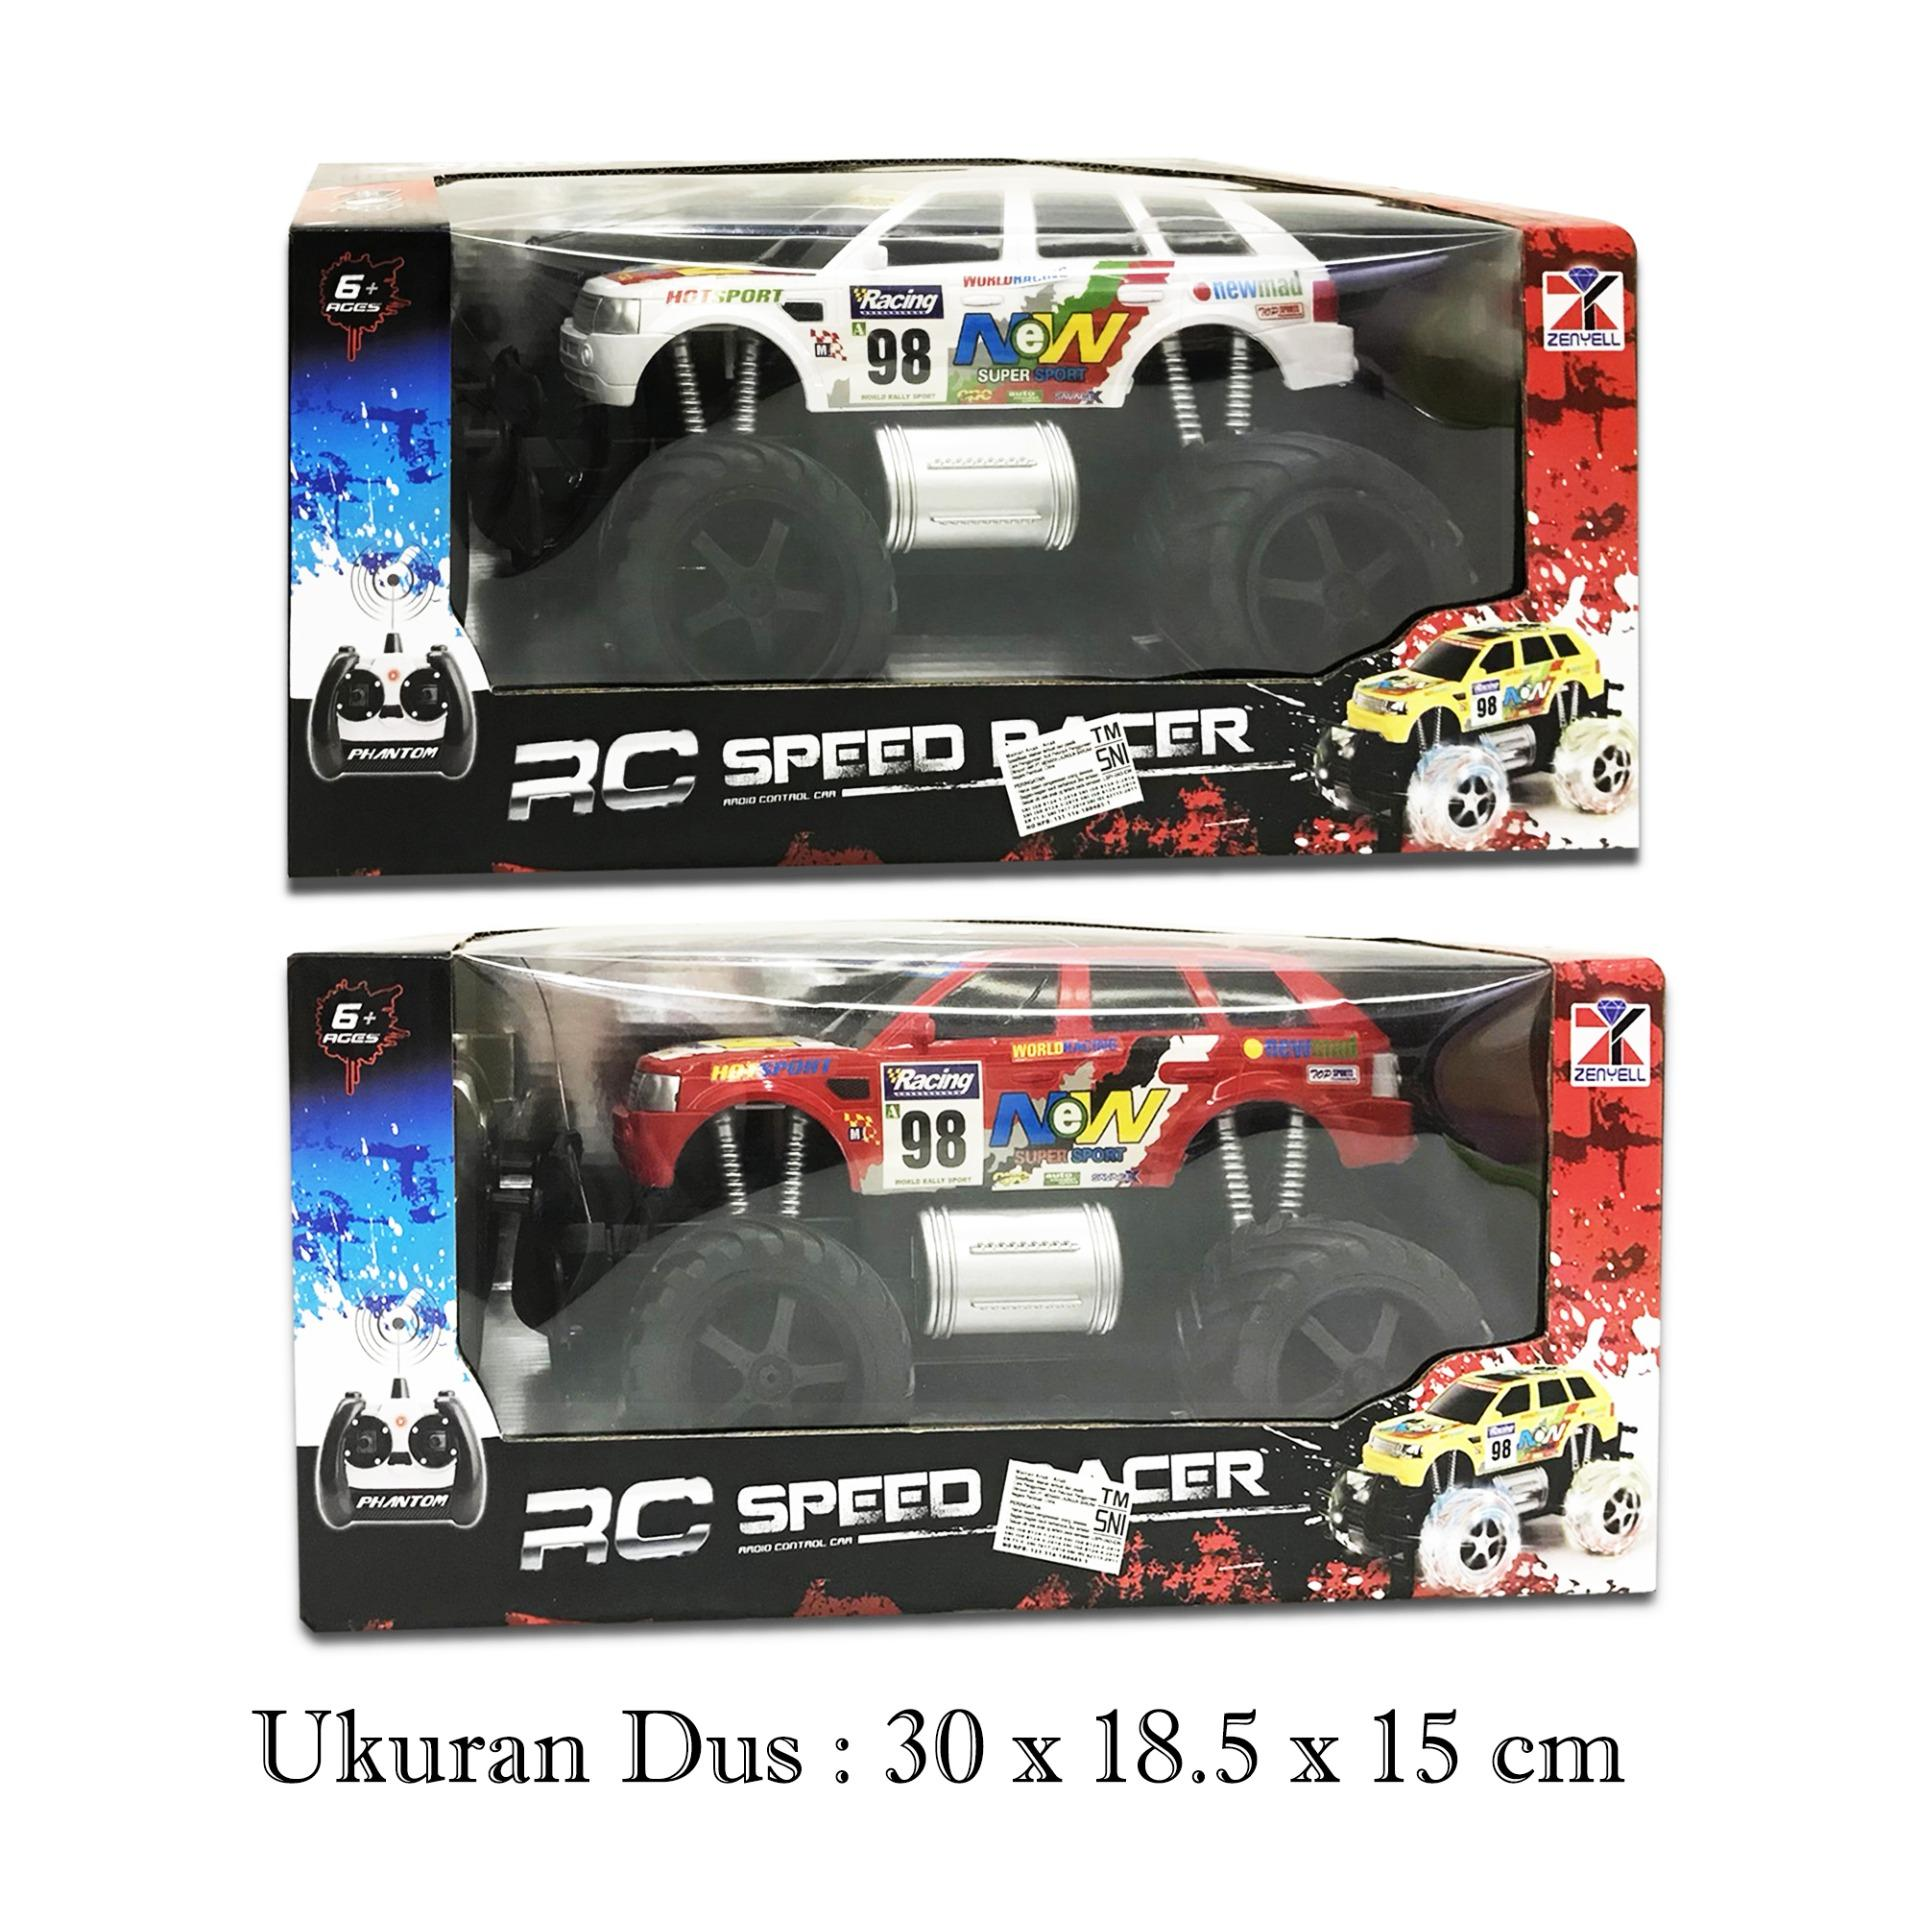 Buy Sell Cheapest New Rc Fire Best Quality Product Deals Wl Toys L999 Challenger 30 Km H Speed With Servo Rtr Racing Buggy Free Baterai Rkj Mainan Anak Mobil Remot Racer 98